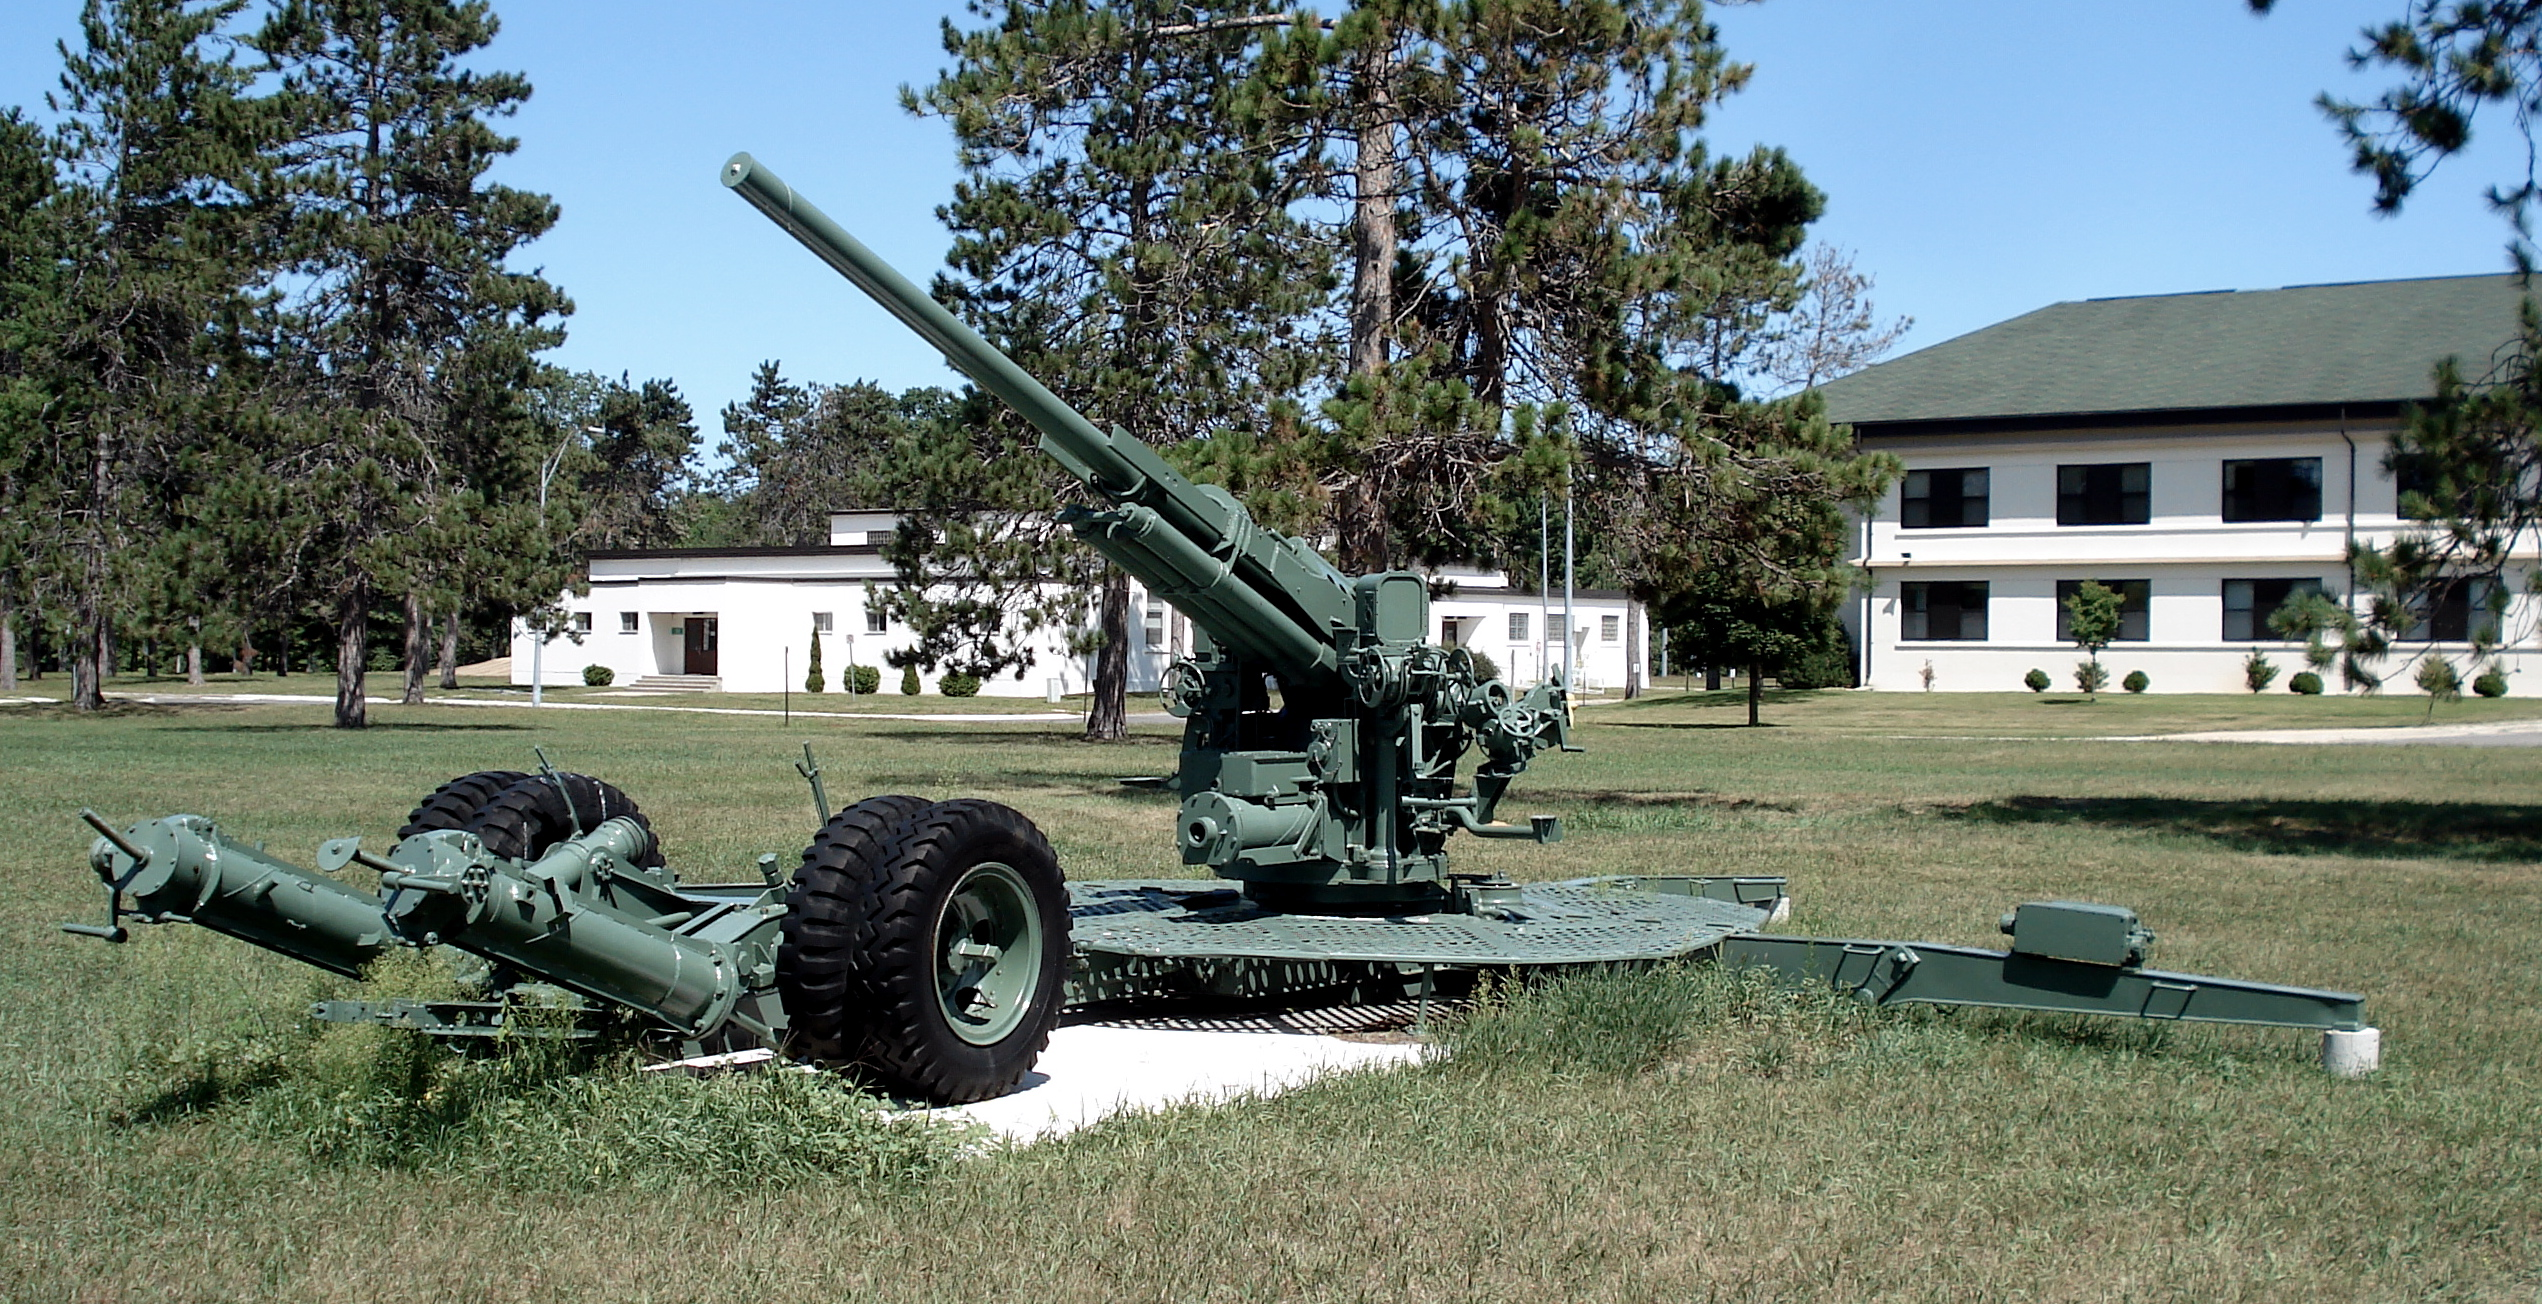 (Image source: Wikipedia 90 mm gun